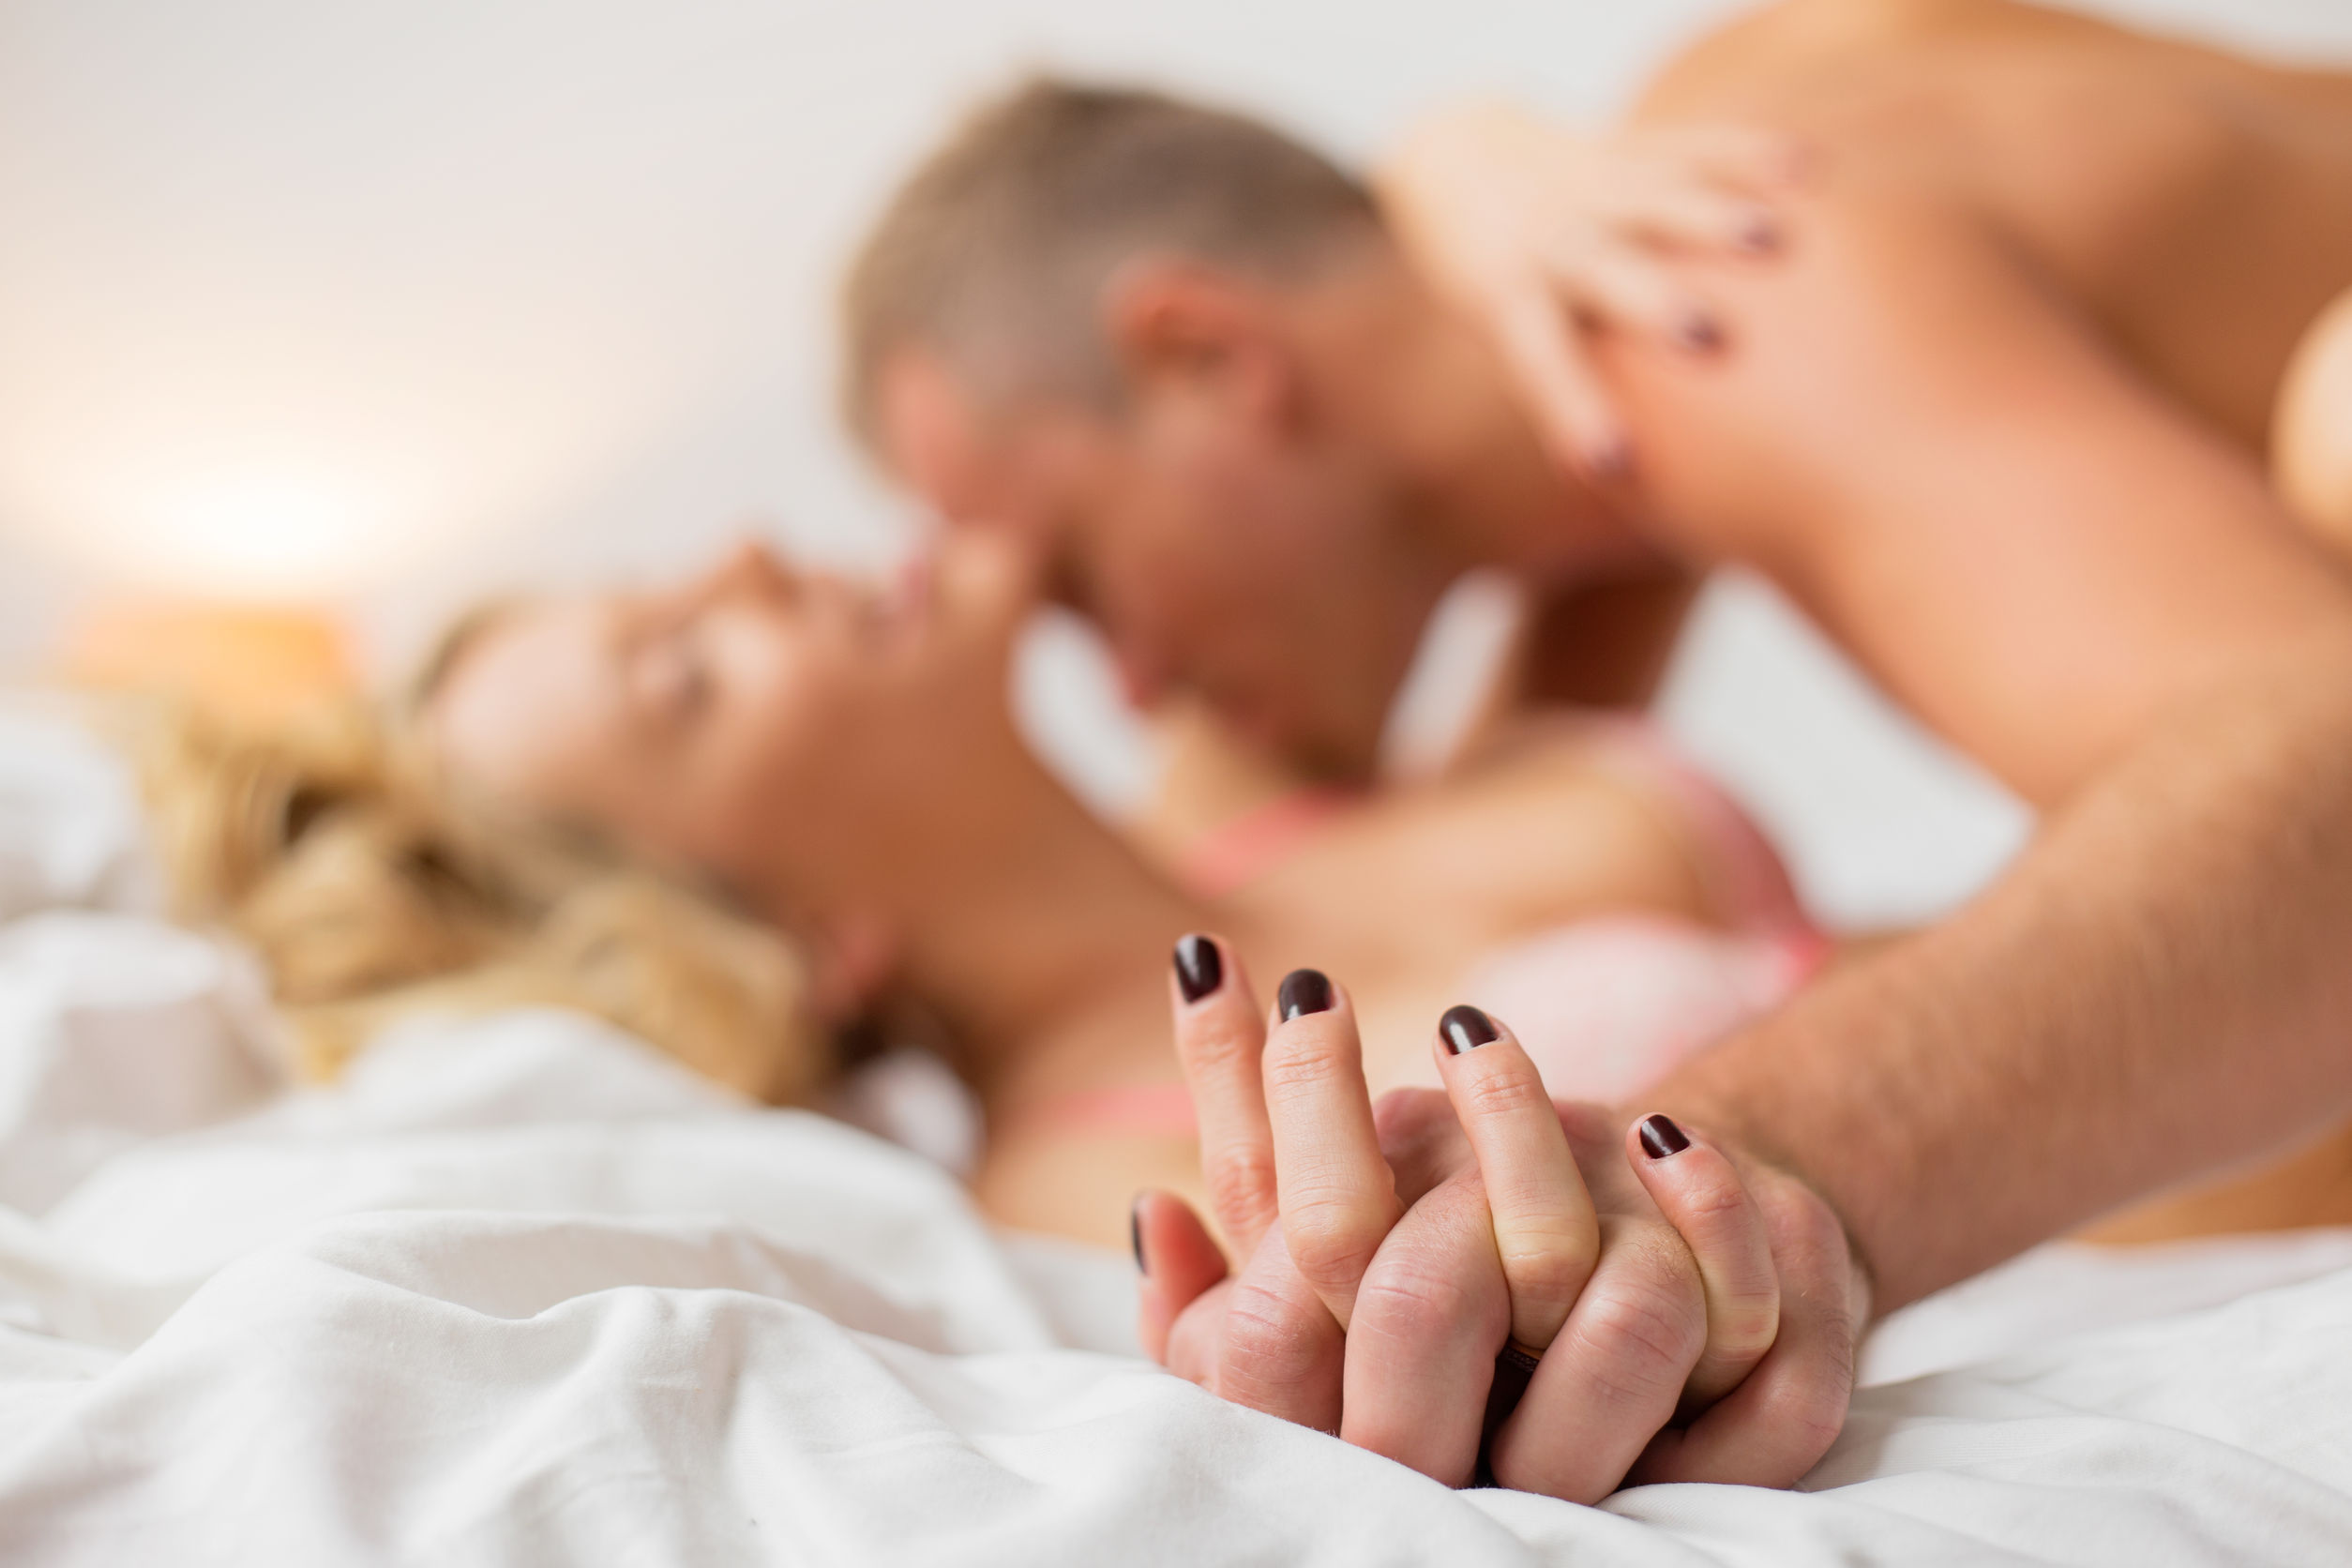 48756735 - man and woman holding hands while making love